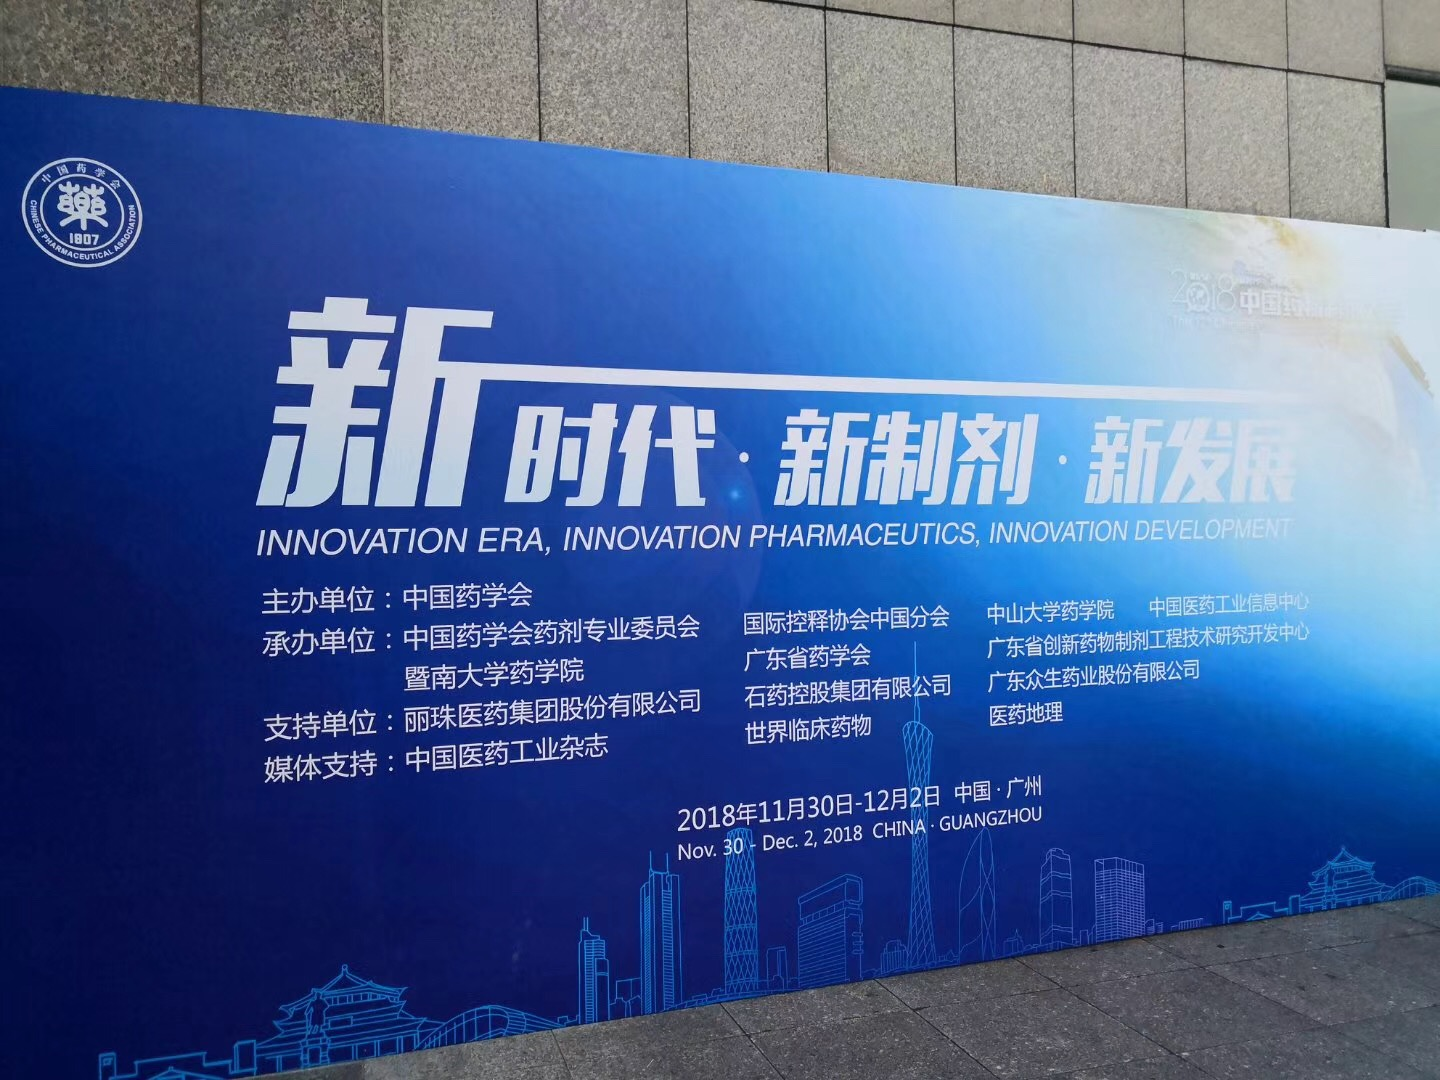 The 12th Chinese Pharmaceutical Conference sponsored by AVT has been held successfully